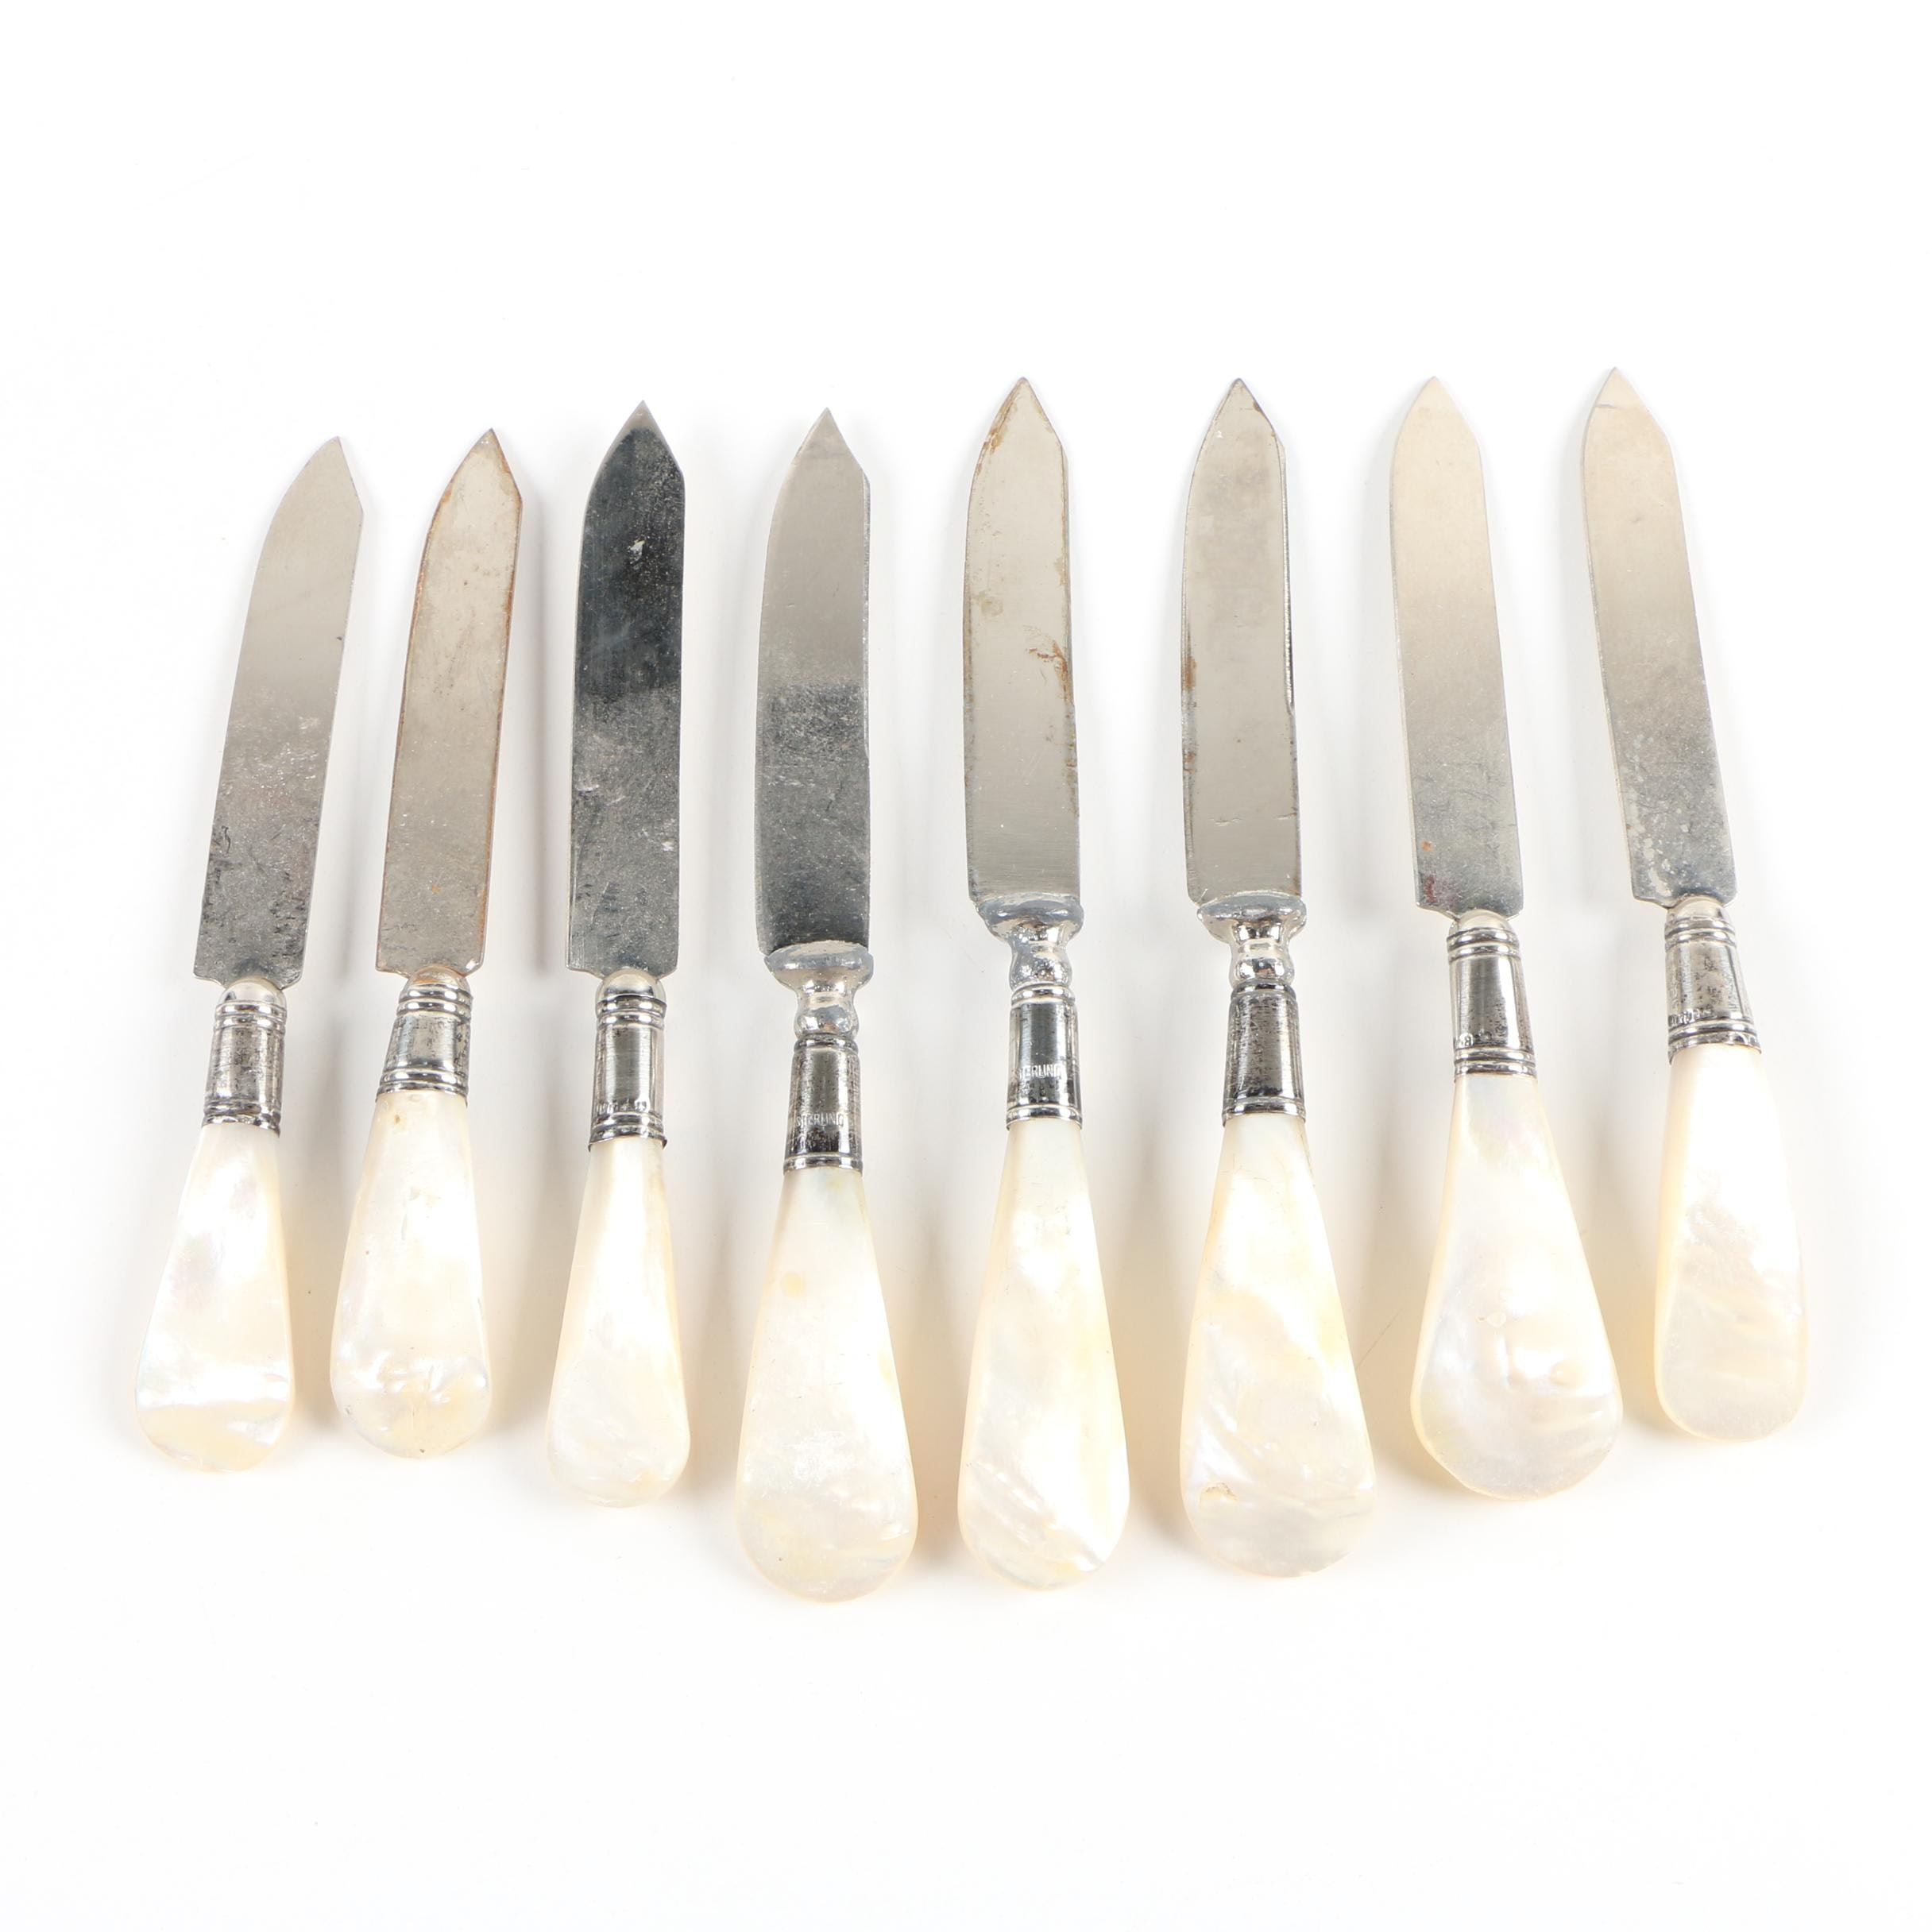 Steak Knives with Sterling and Mother-of-Pearl Handles